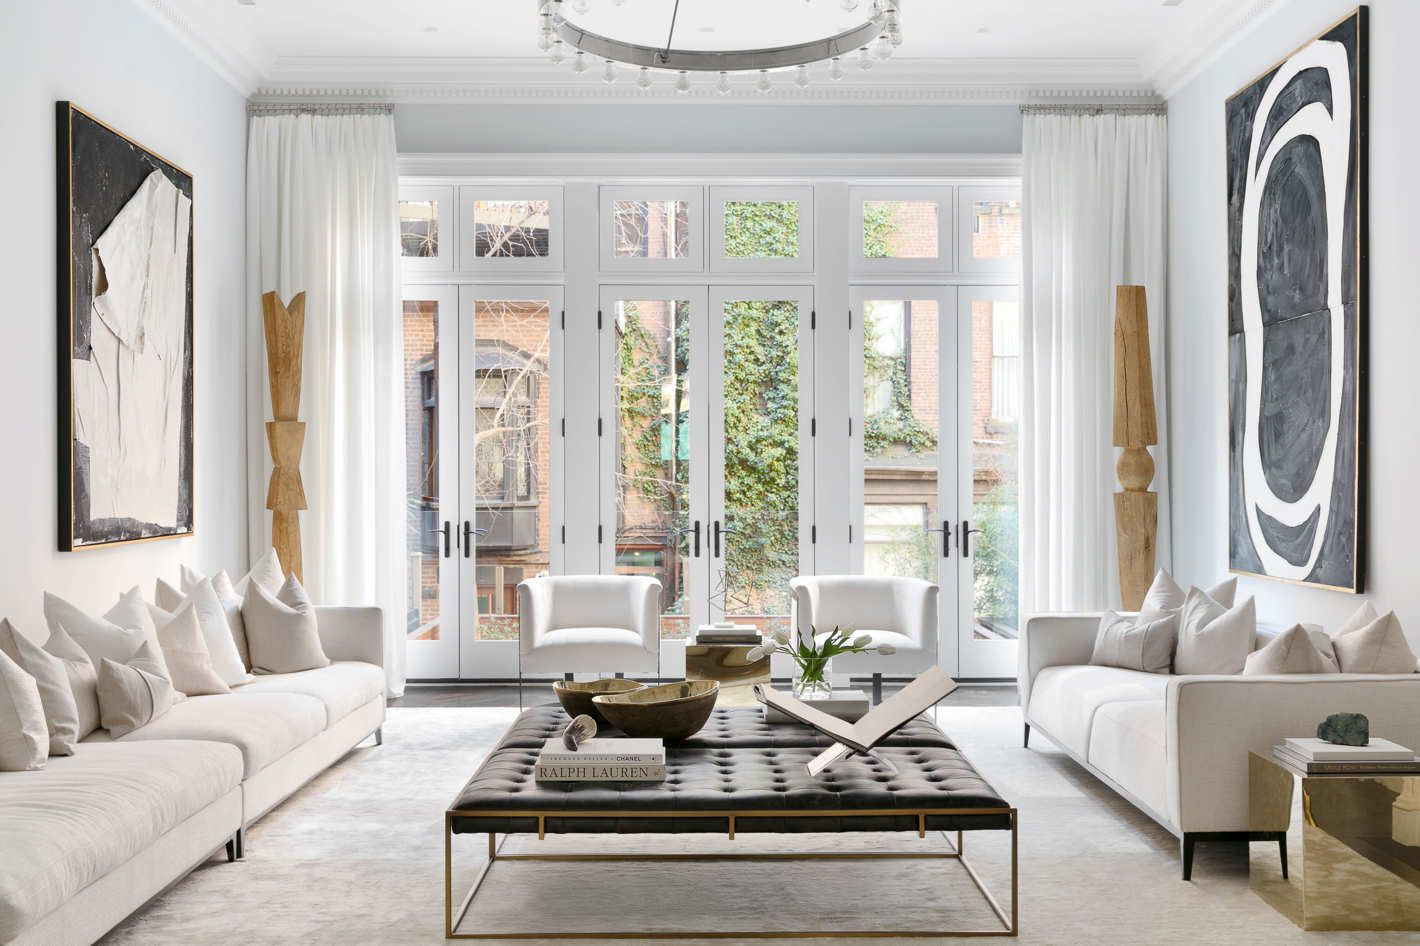 7 Inexpensive Ways to Make Your House Look More Expensive